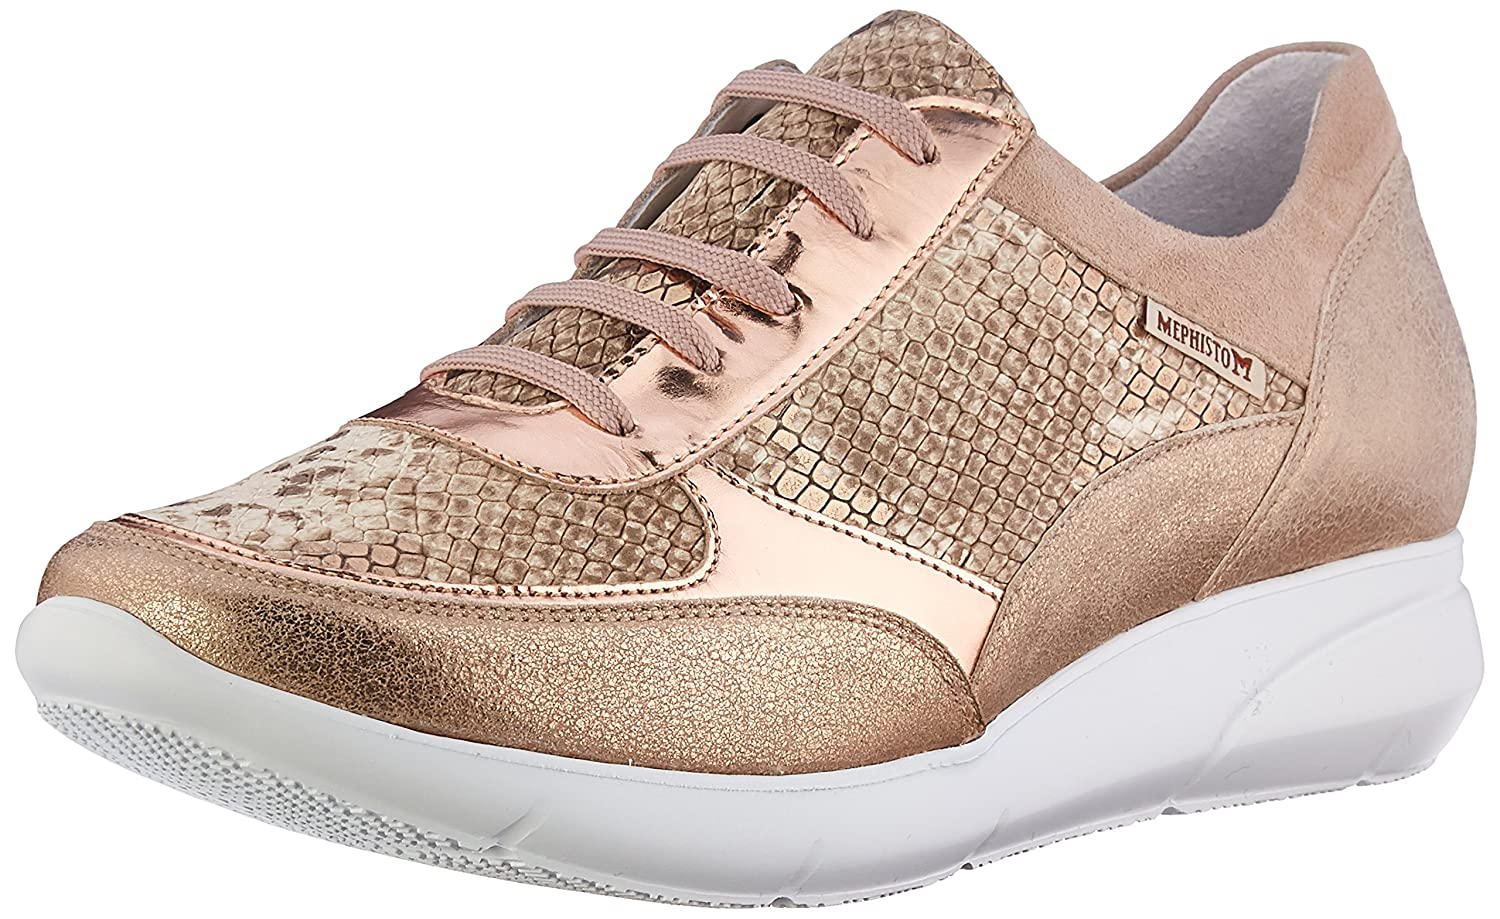 Mephisto Women's Diane Oxford B01MST1HMO 6.5 B(M) US|Light Sand Old Vintage/Gold Boa/Nude Magic/Light Sand Velcalf Premium